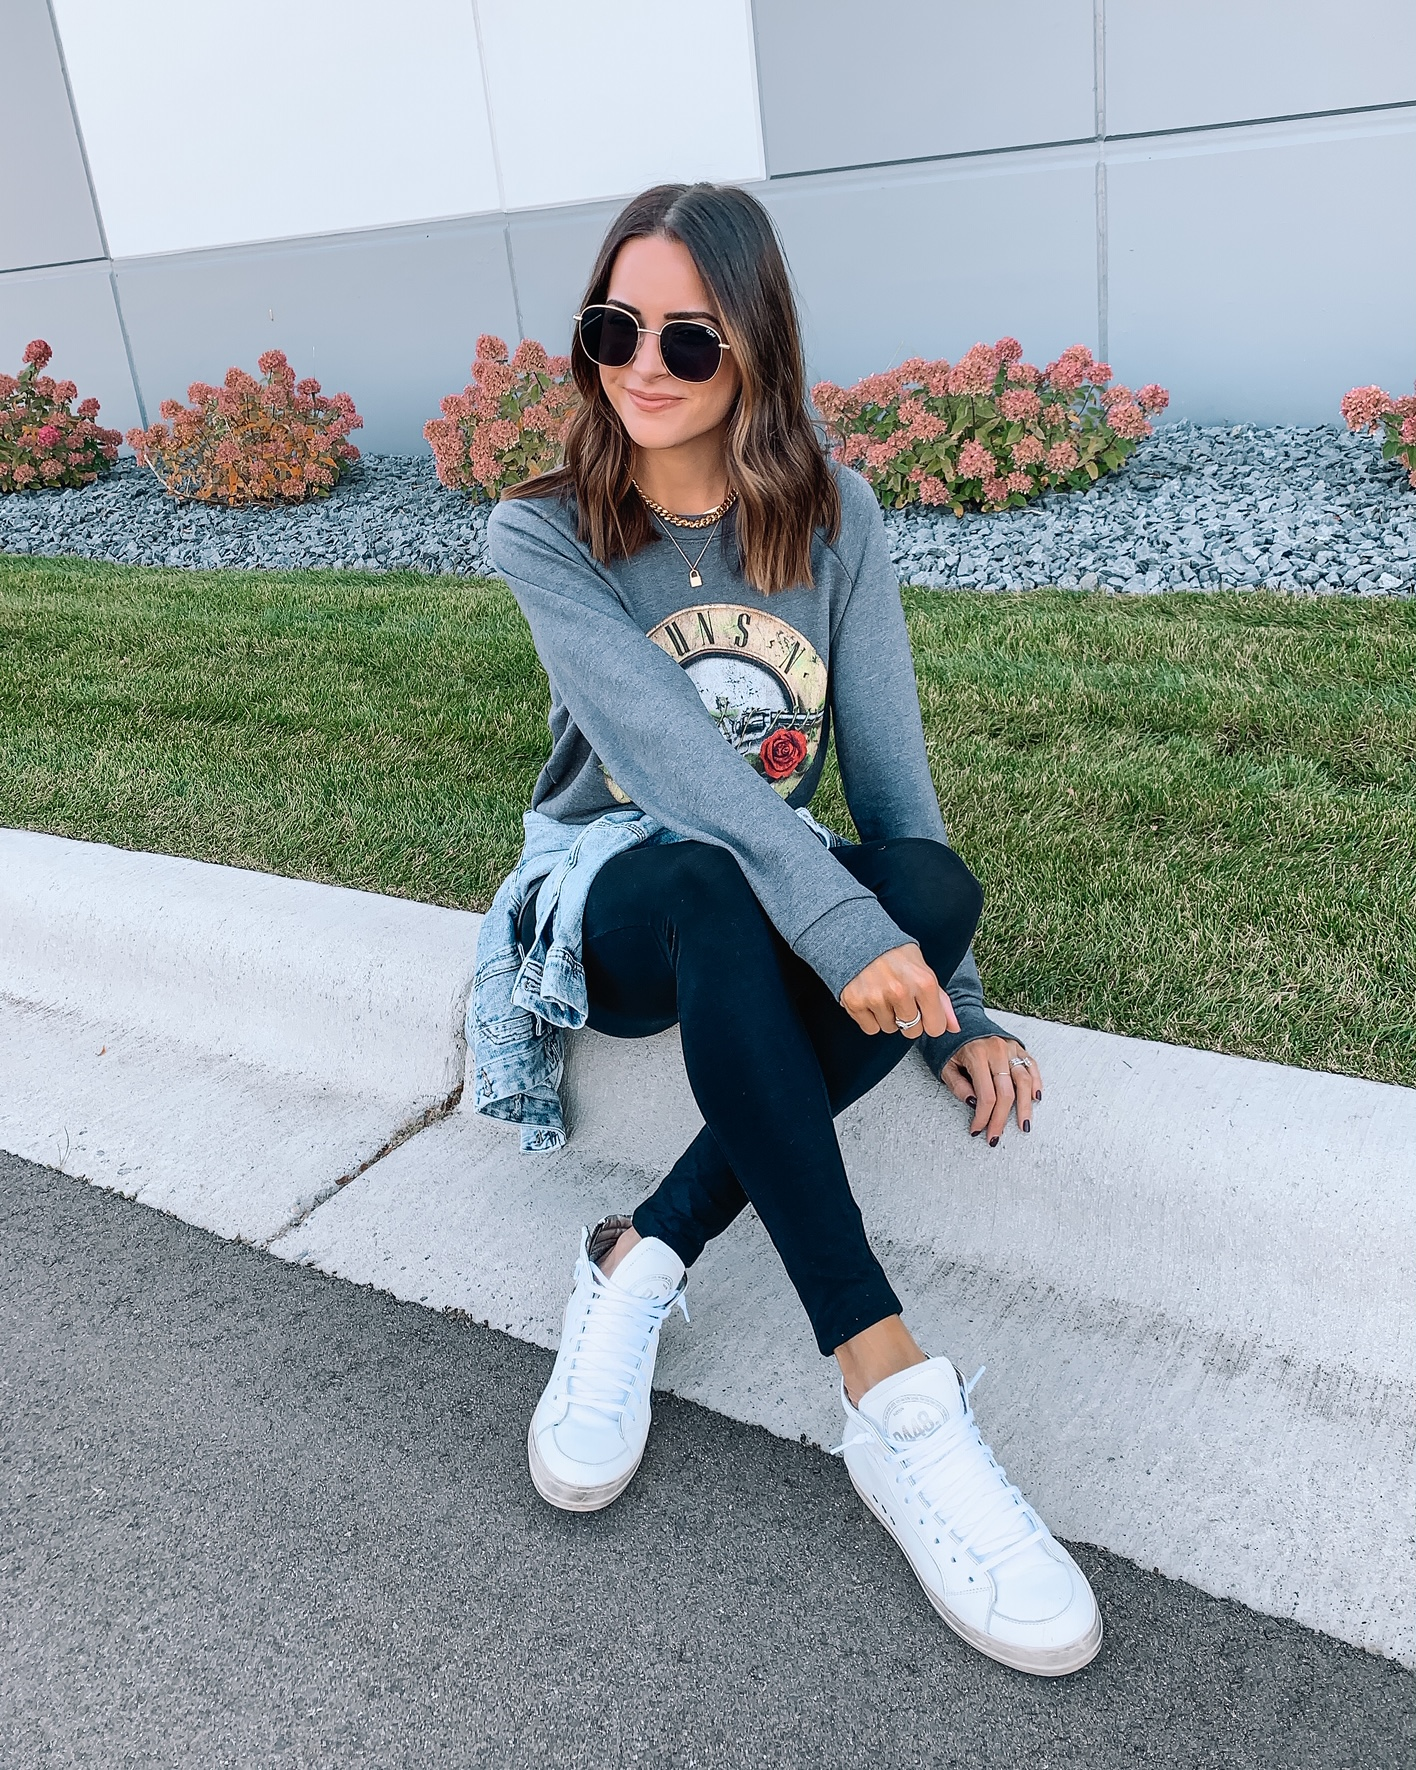 nordstrom fall favorites, fall fashion, under $100, band graphic sweatshirt, high-top sneakers